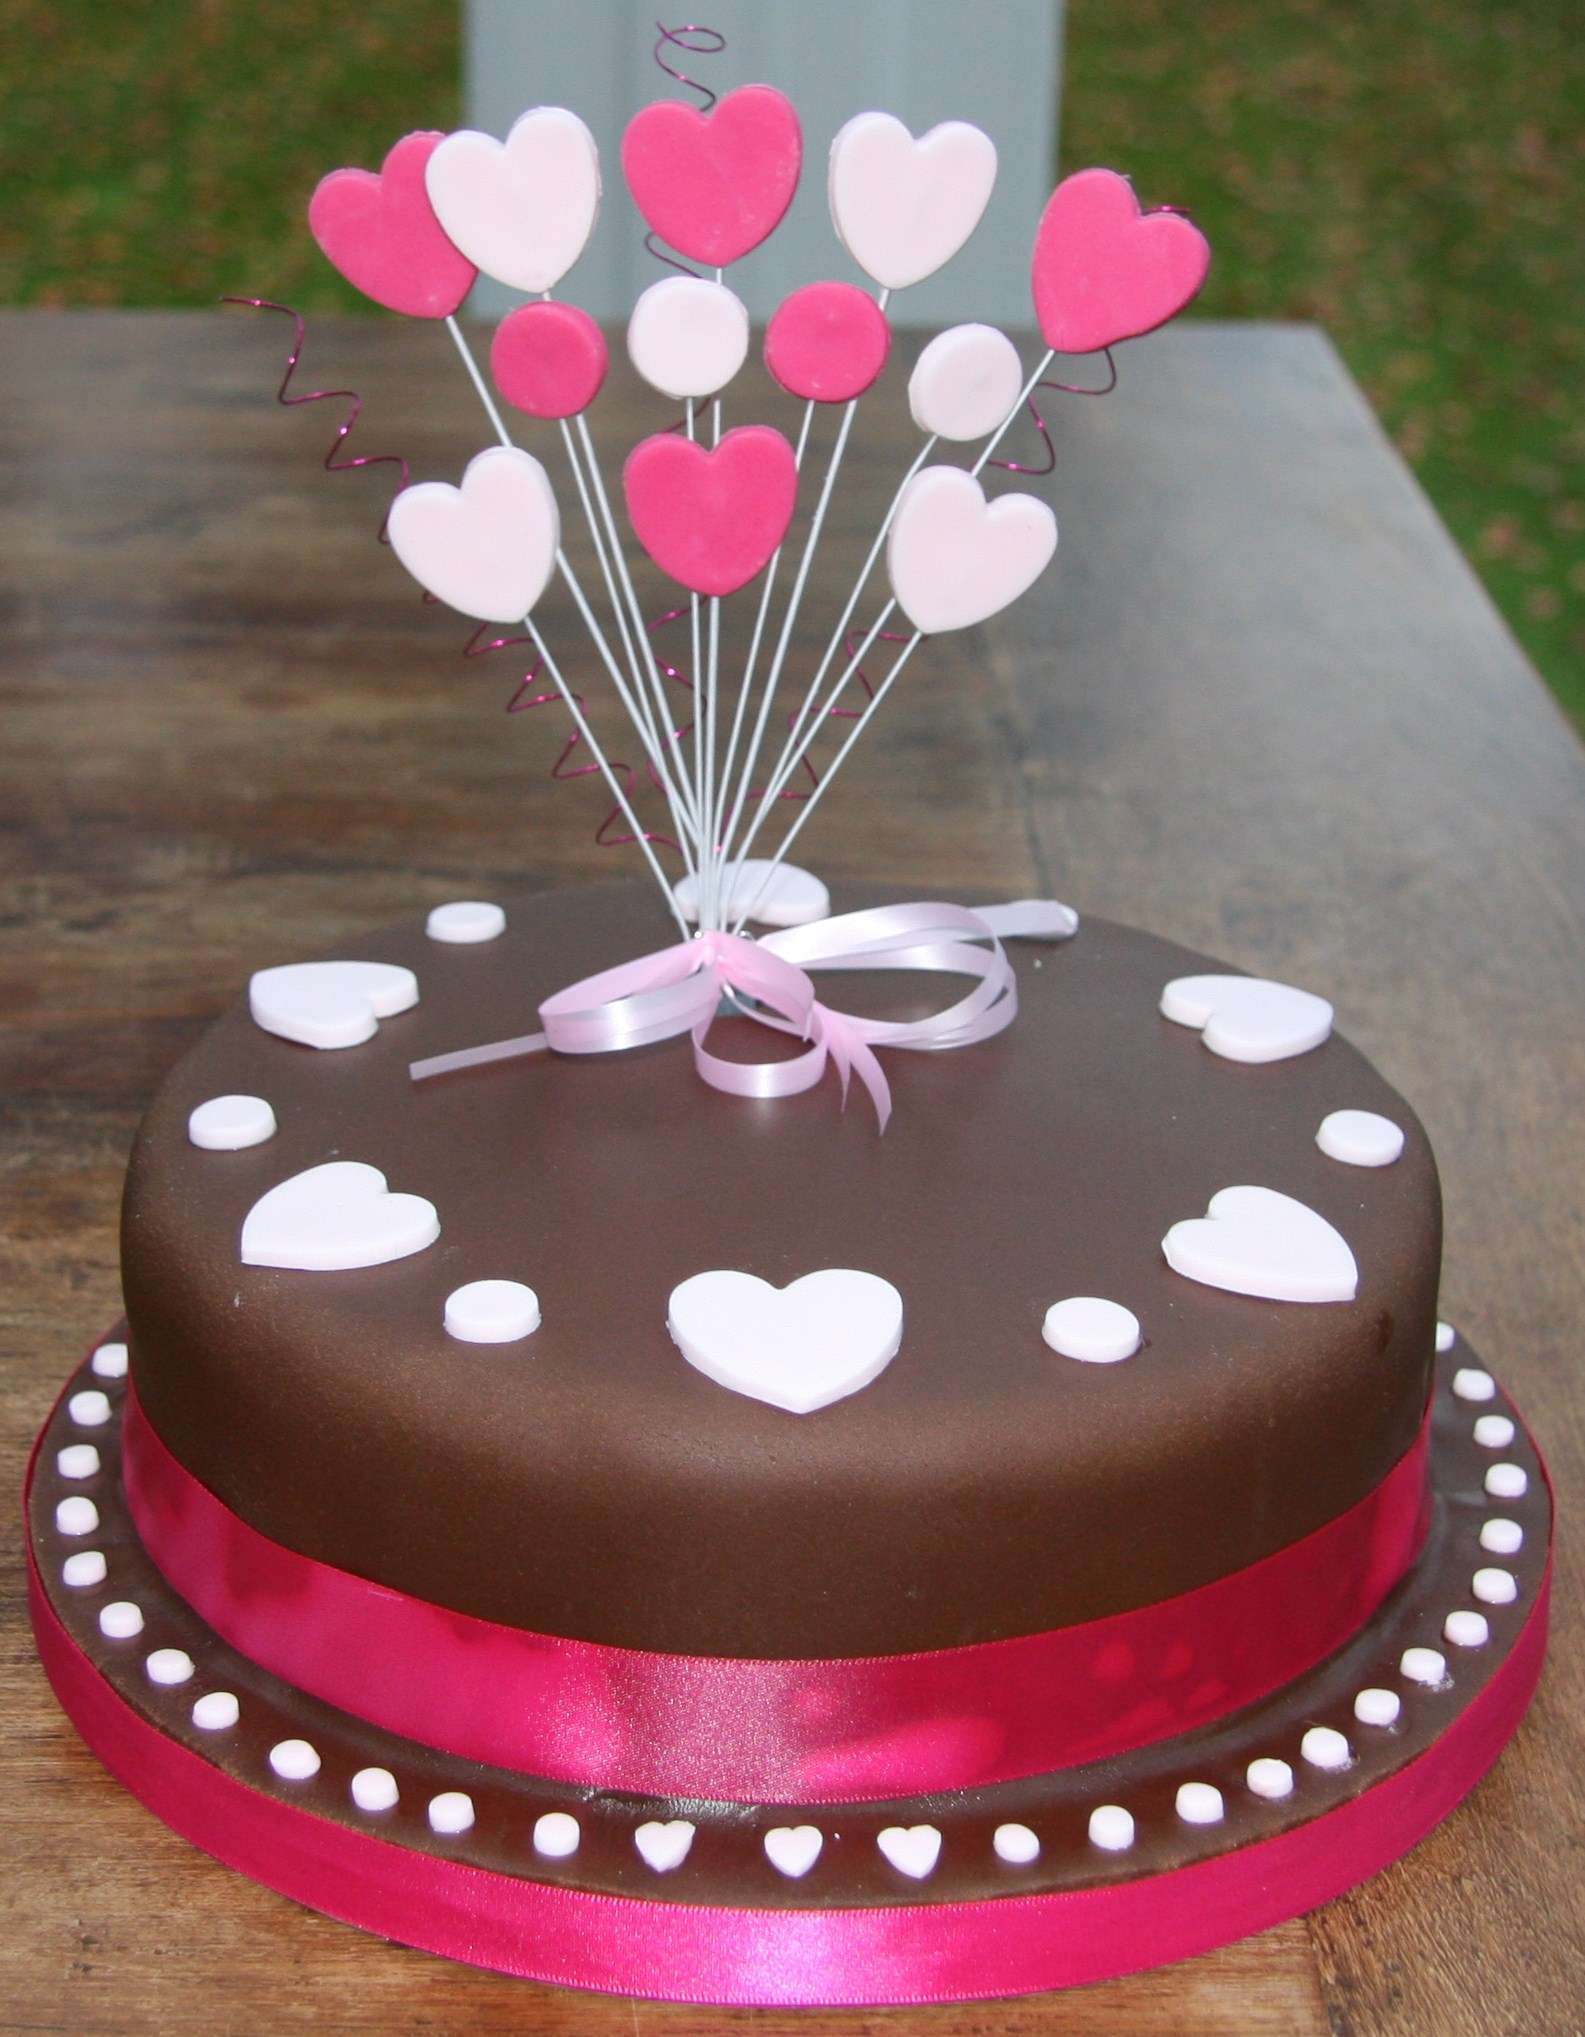 Heart birthday chocolate cake & Chocolate Birthday Cake with Hearts u2013 lovinghomemade